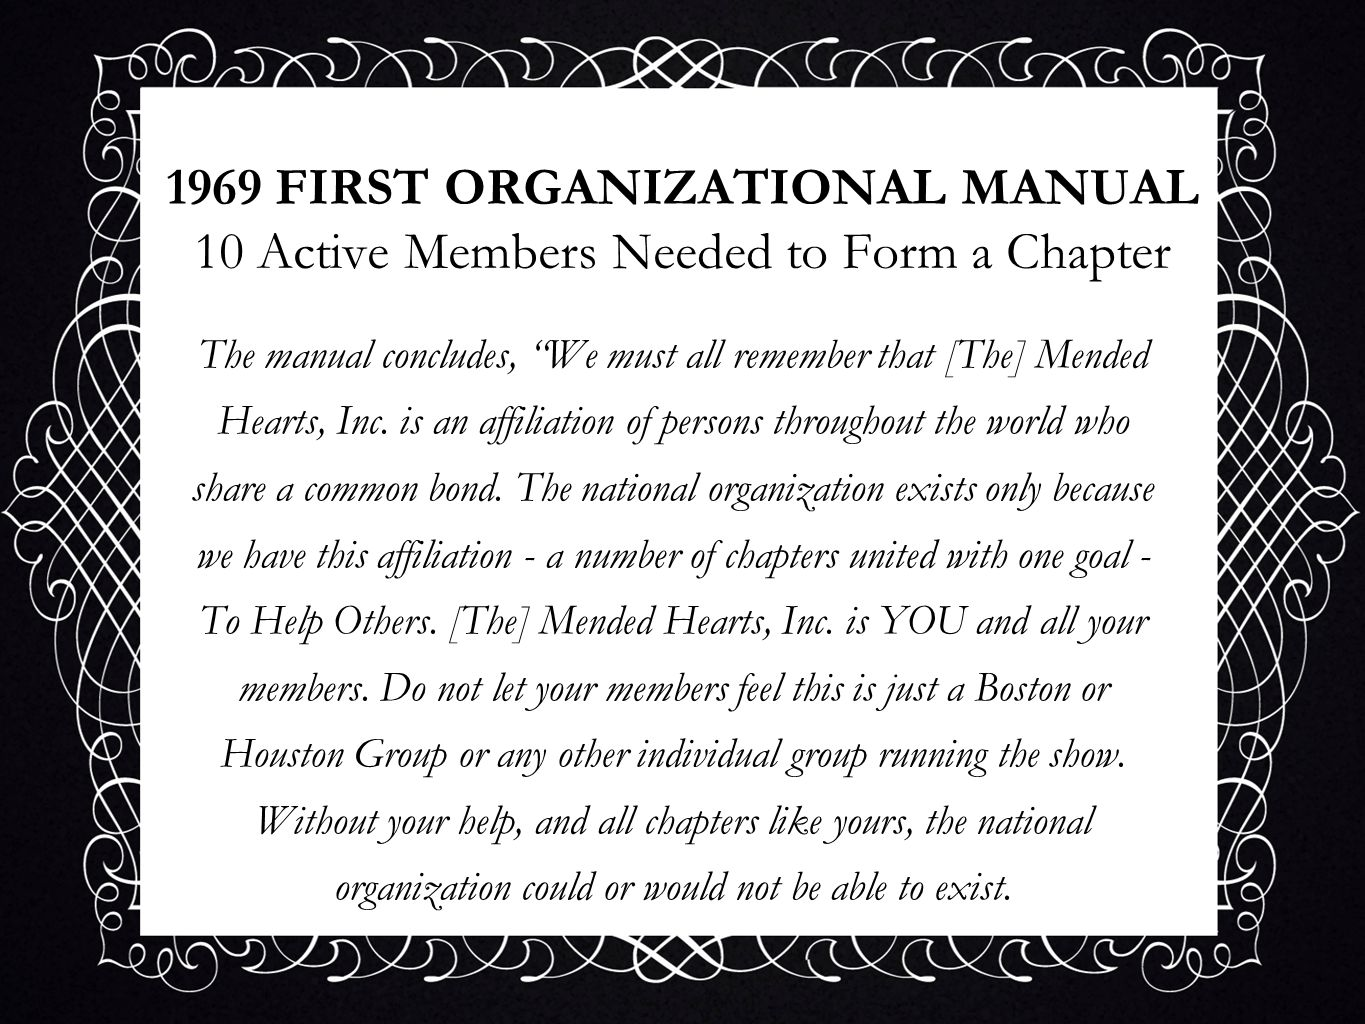 1969 FIRST ORGANIZATIONAL MANUAL 10 Active Members Needed to Form a Chapter